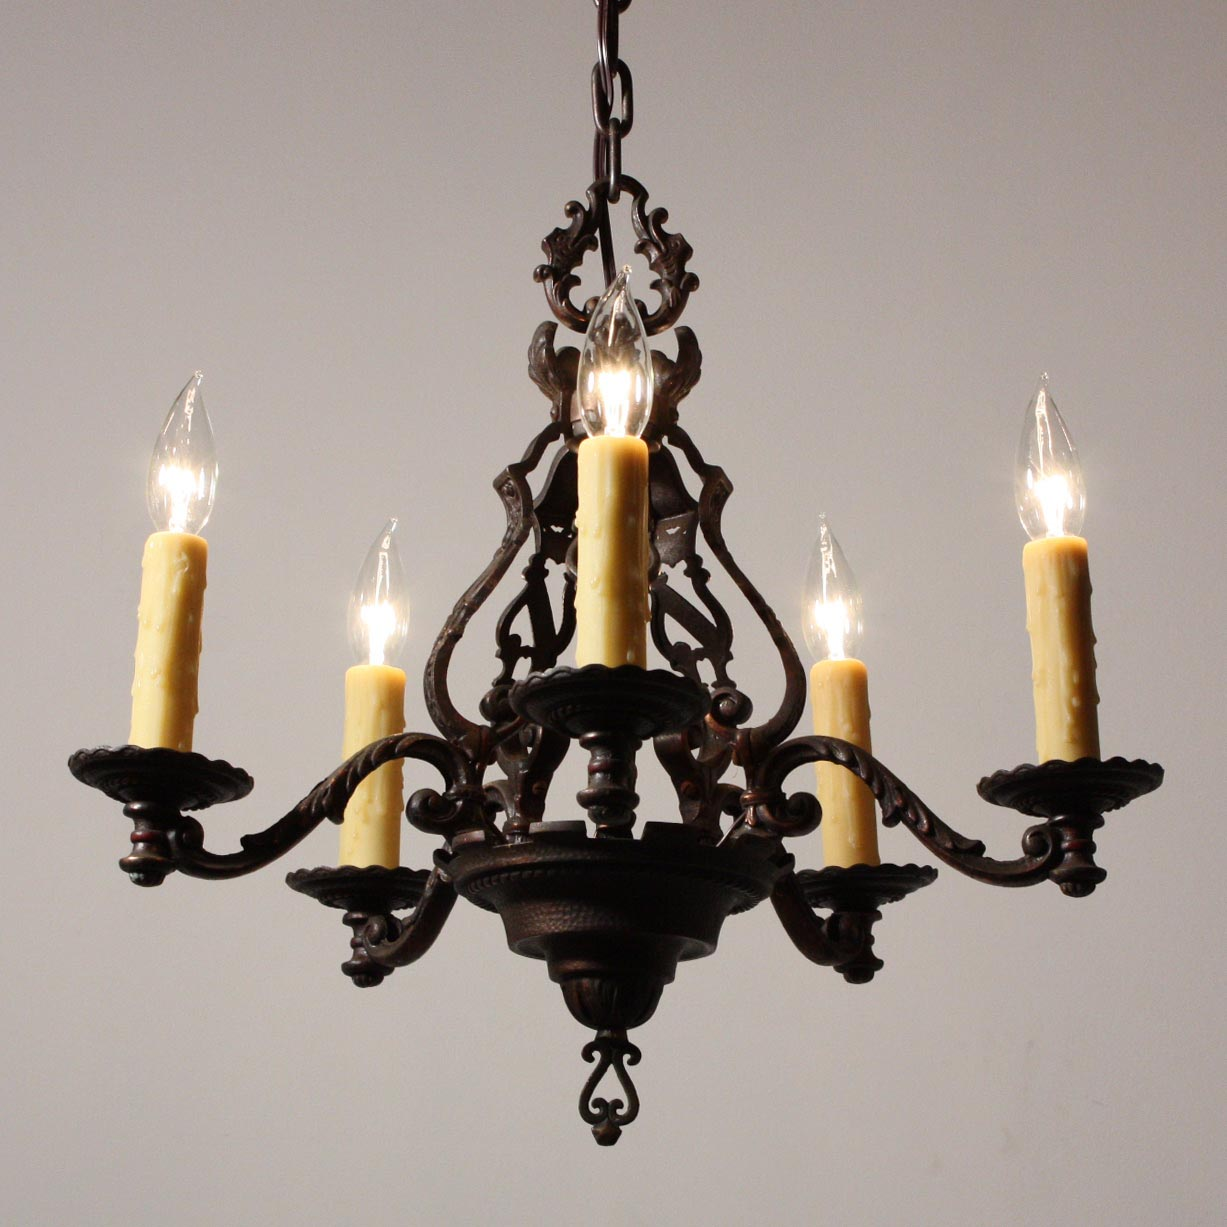 Antique Iron Lighting Fixtures